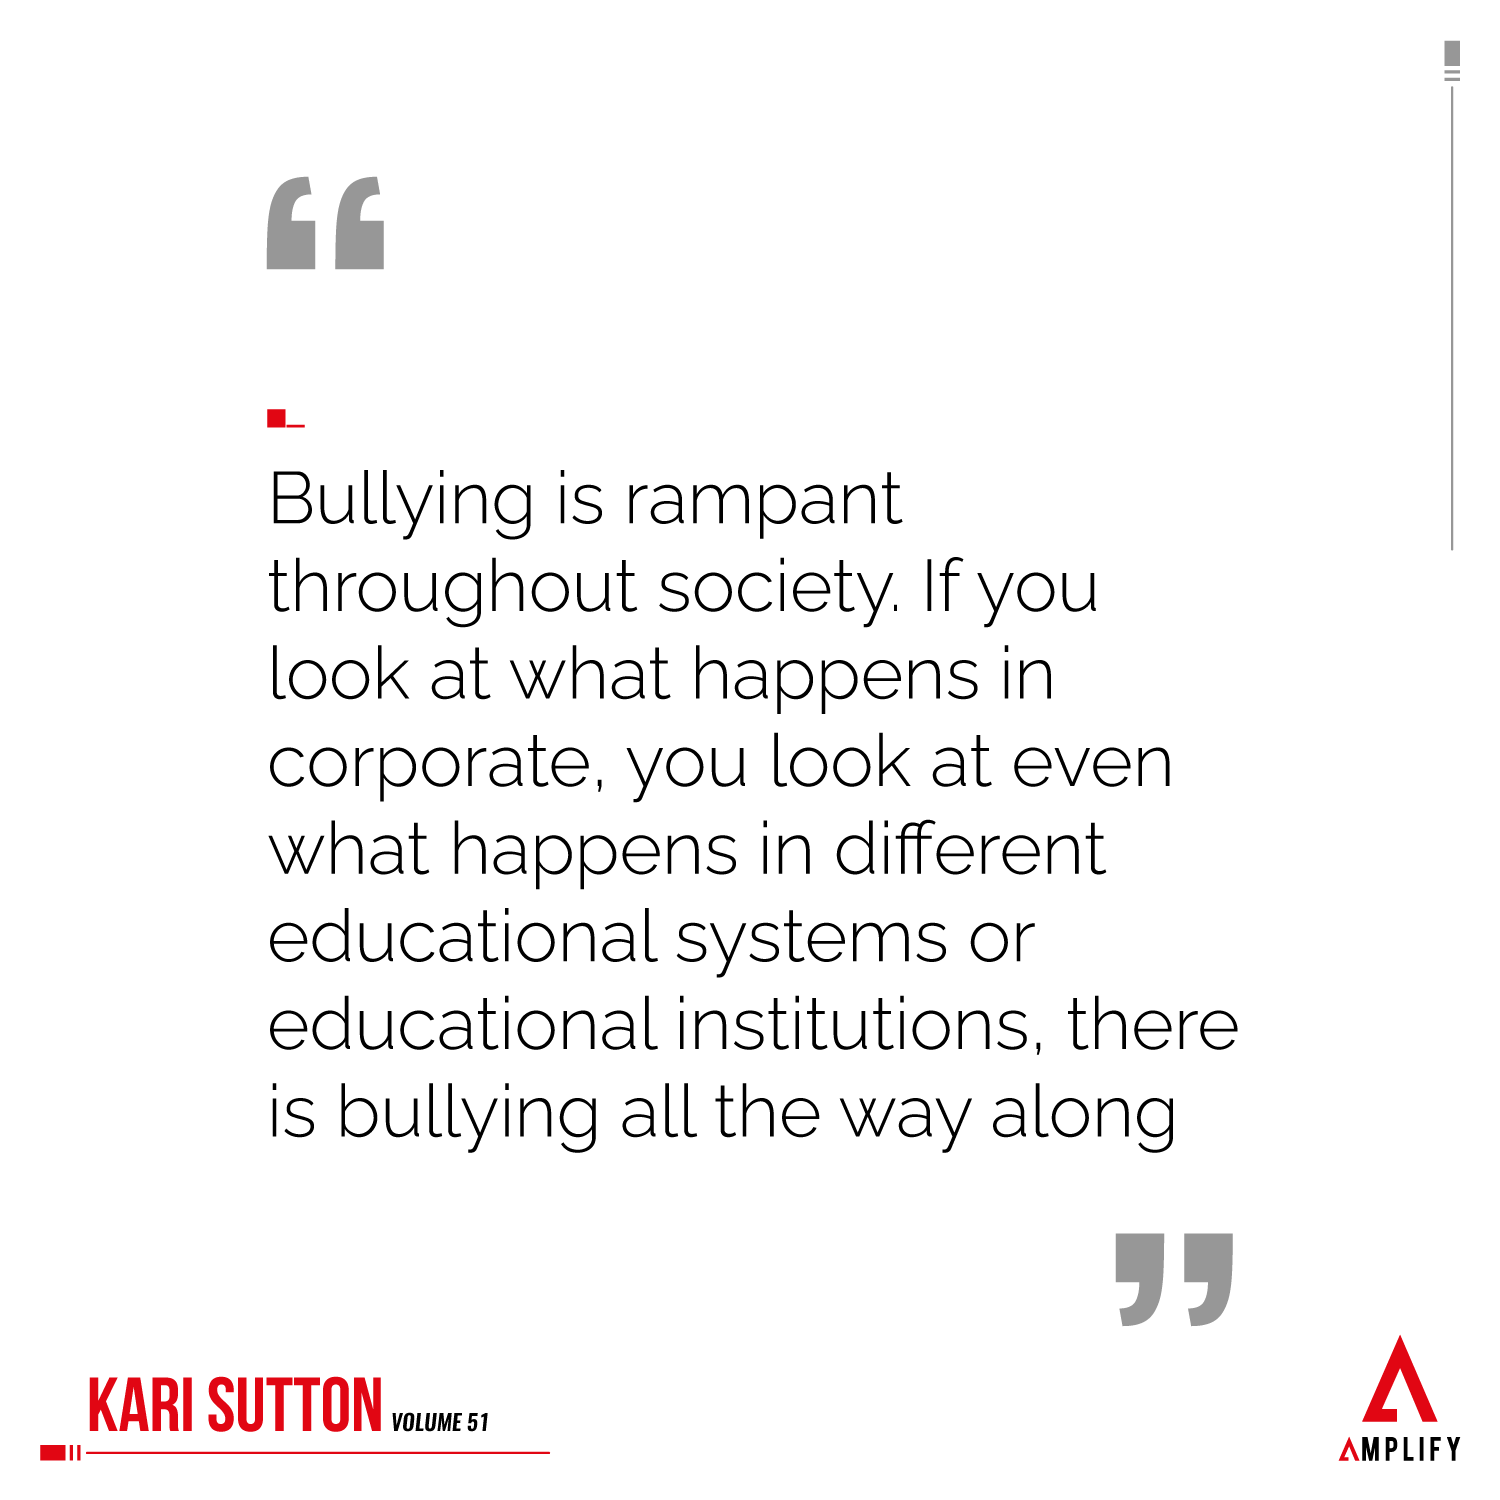 """""""Bullying is rampant throughout society. If you look at what happens in corporate, you look at even what happens in different educational systems or educational institutions, there is bullying all the way along"""""""